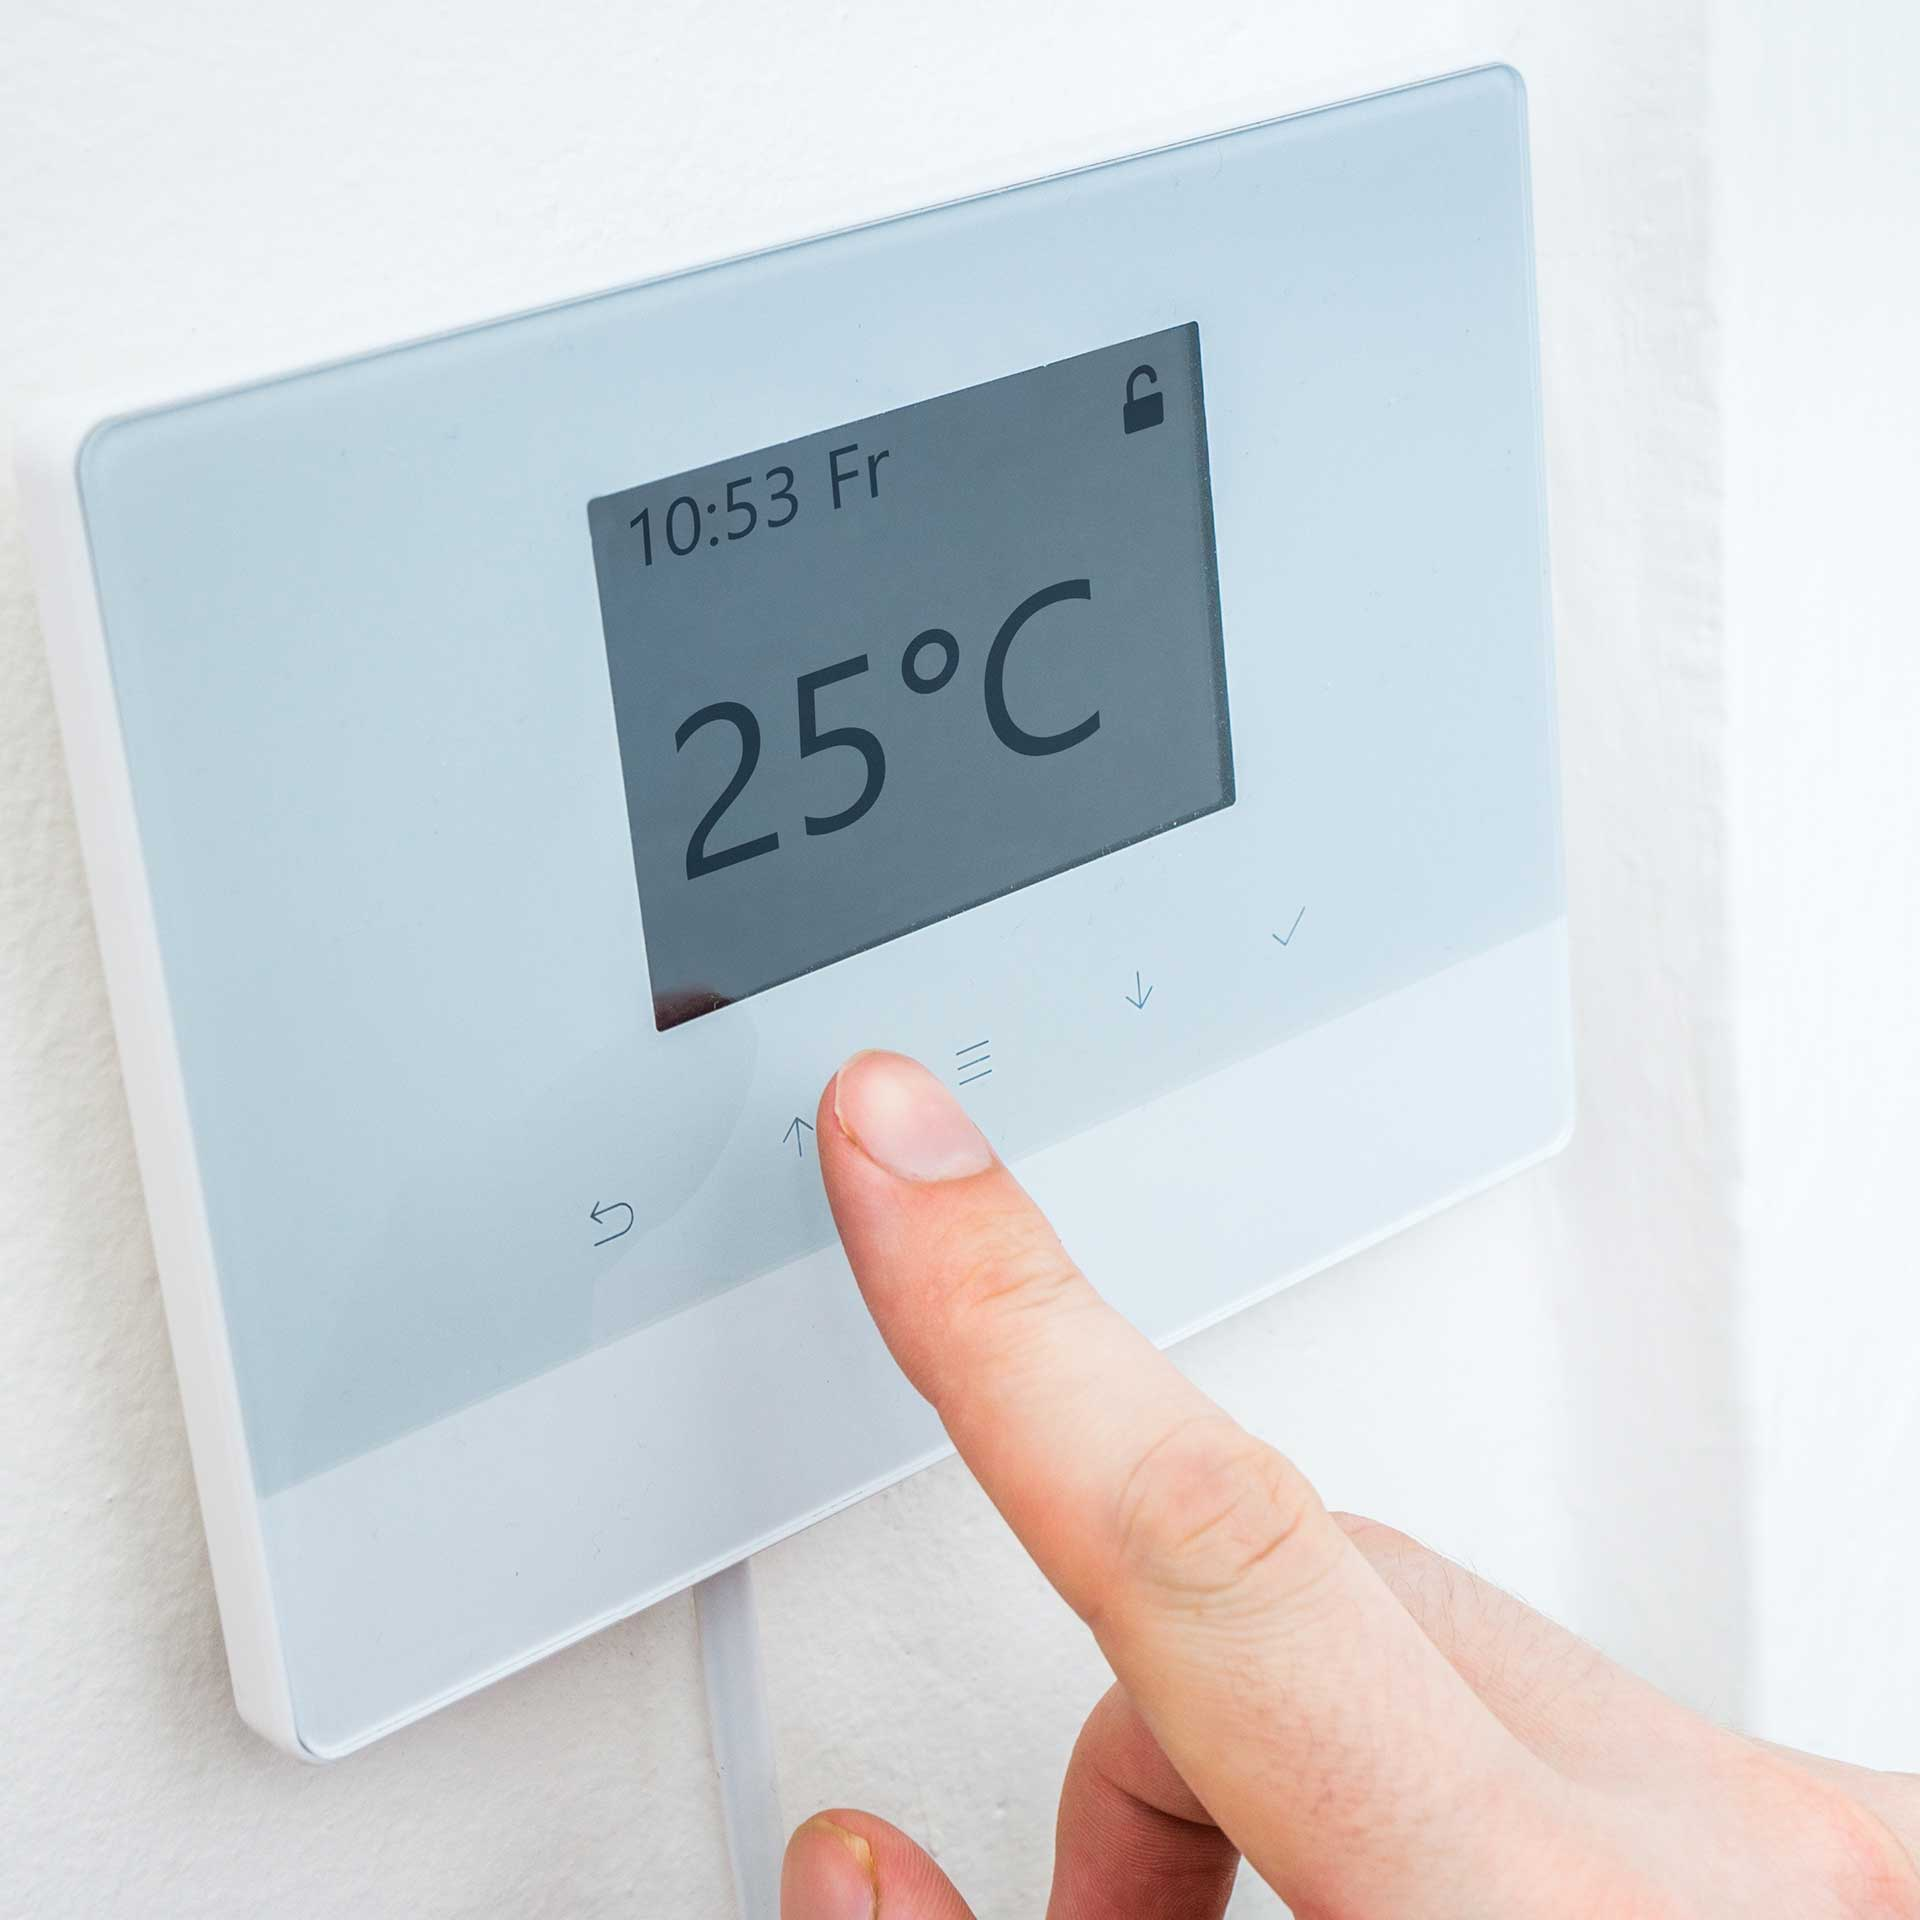 Central heating thermostat set to 25c